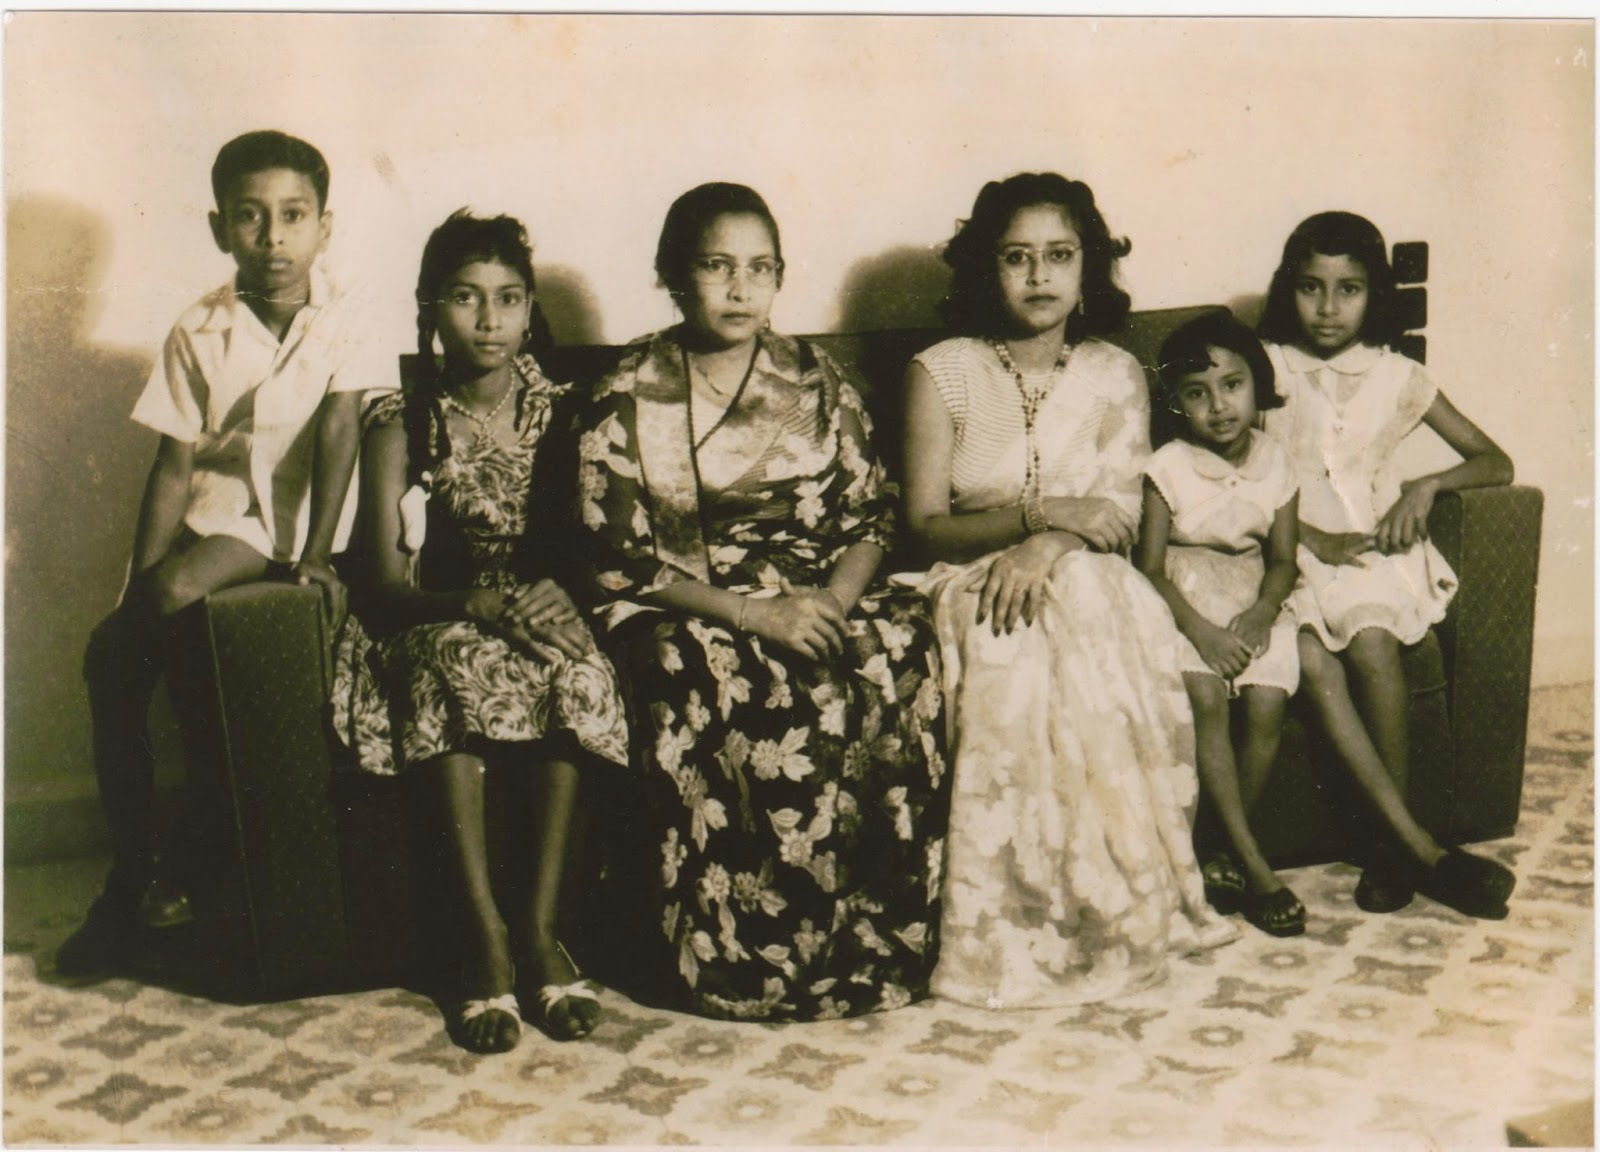 Author Mina Khan's mother, grandmother and family